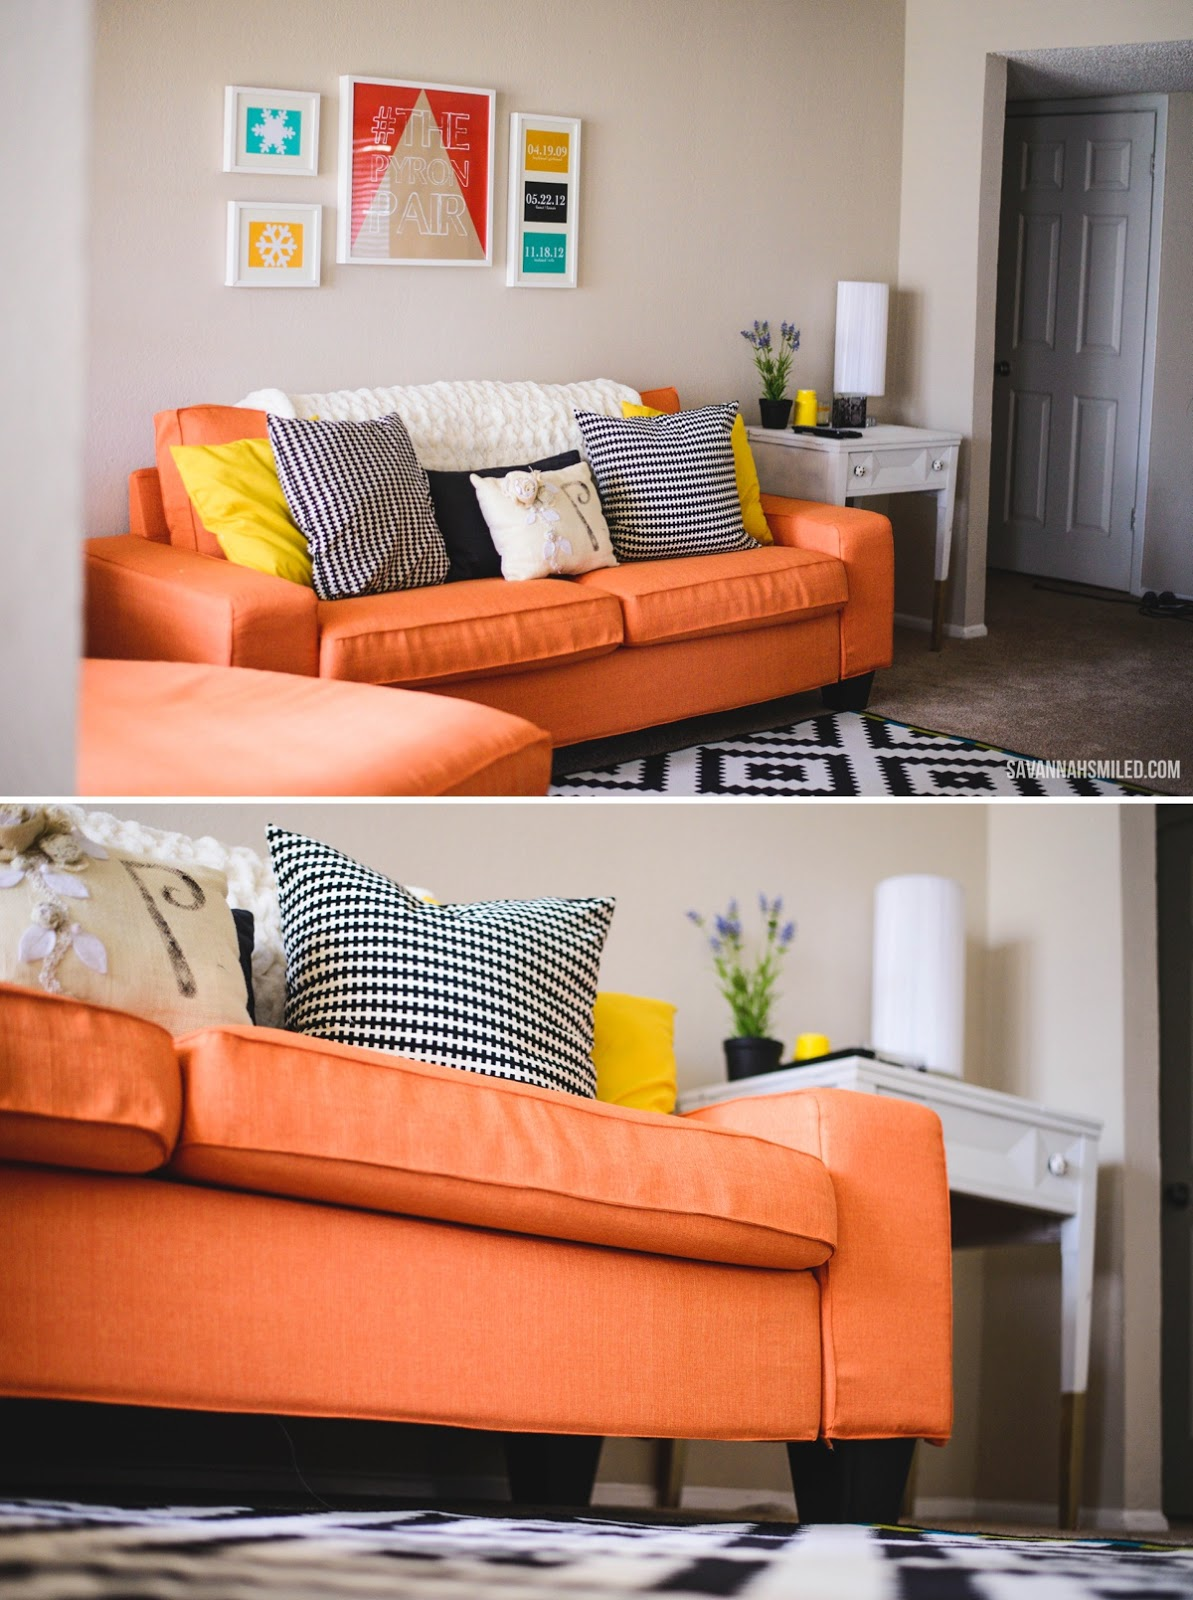 ikea-kivik-couch-orange-sofa-covers.jpg